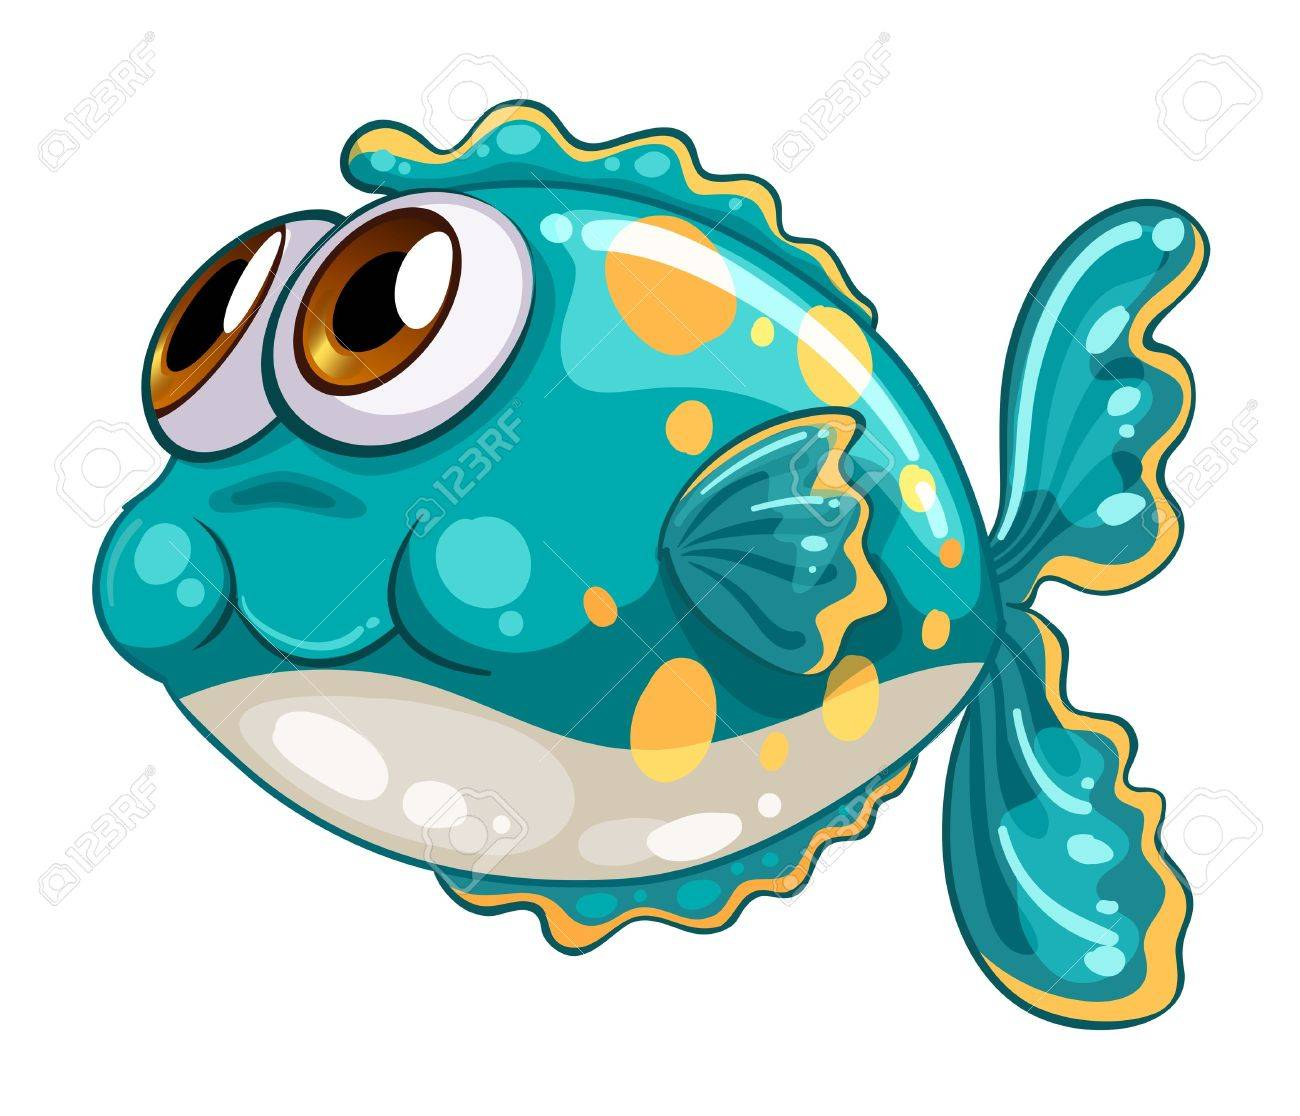 Illustration of a bubble fish on a white background Stock Vector - 21095147